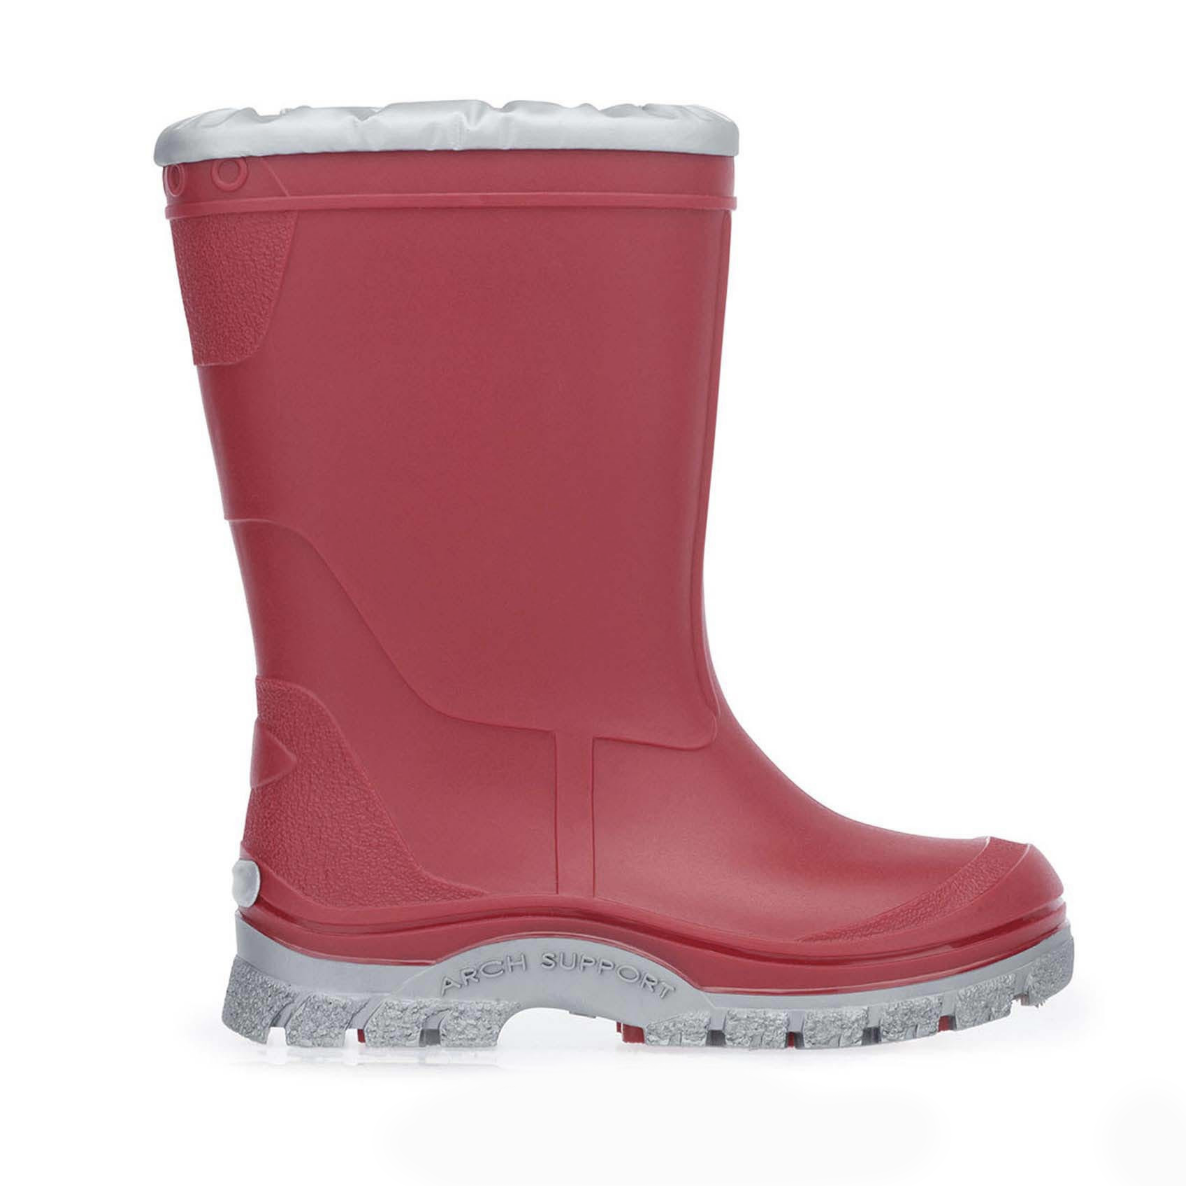 Start Rite Modbuster Wellington Boots